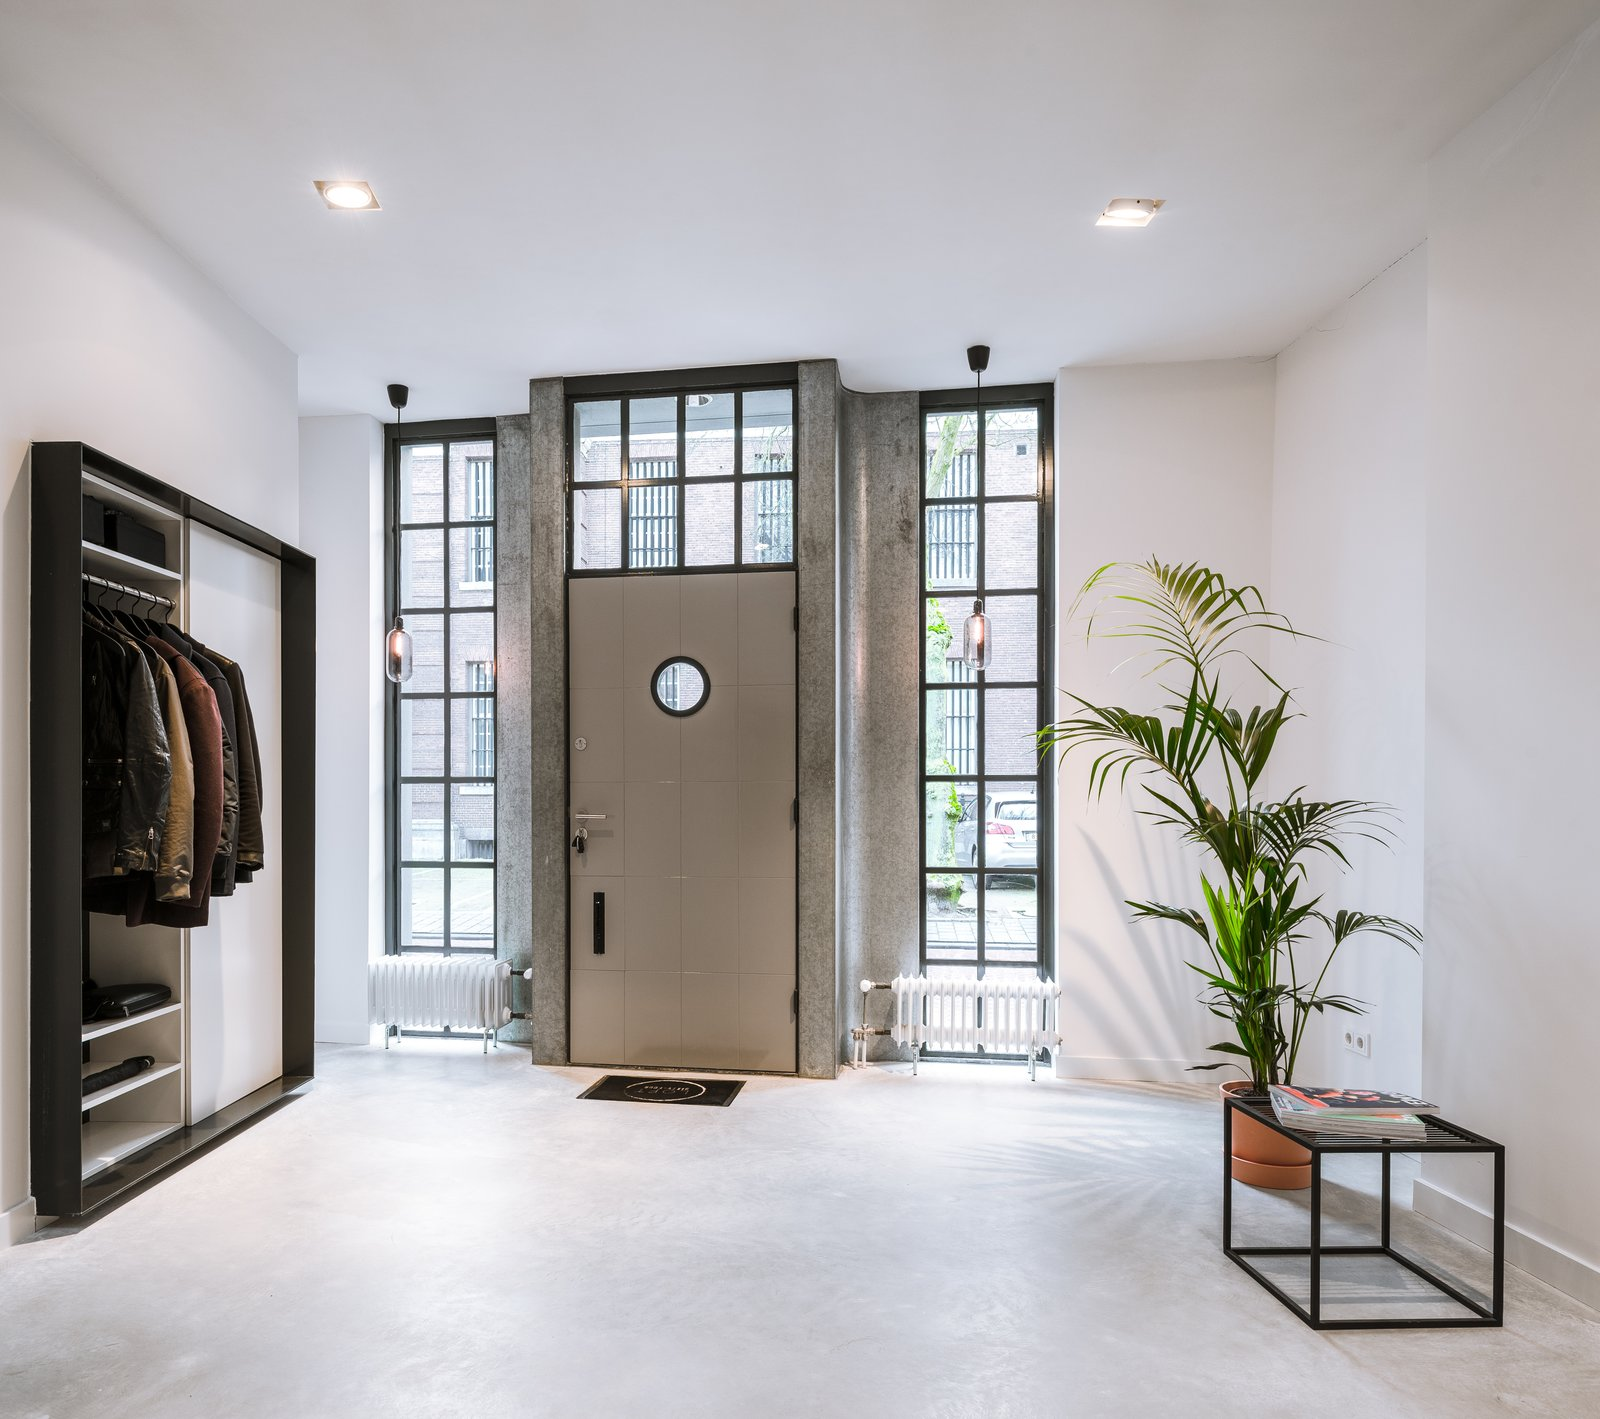 Doors, Metal, Swing Door Type, and Exterior Glass windows help connect the entrance foyer to the street outdoors.  Photo 3 of 14 in A 19th-Century Dutch Workshop Is Now a Stunning, Spacious Loft